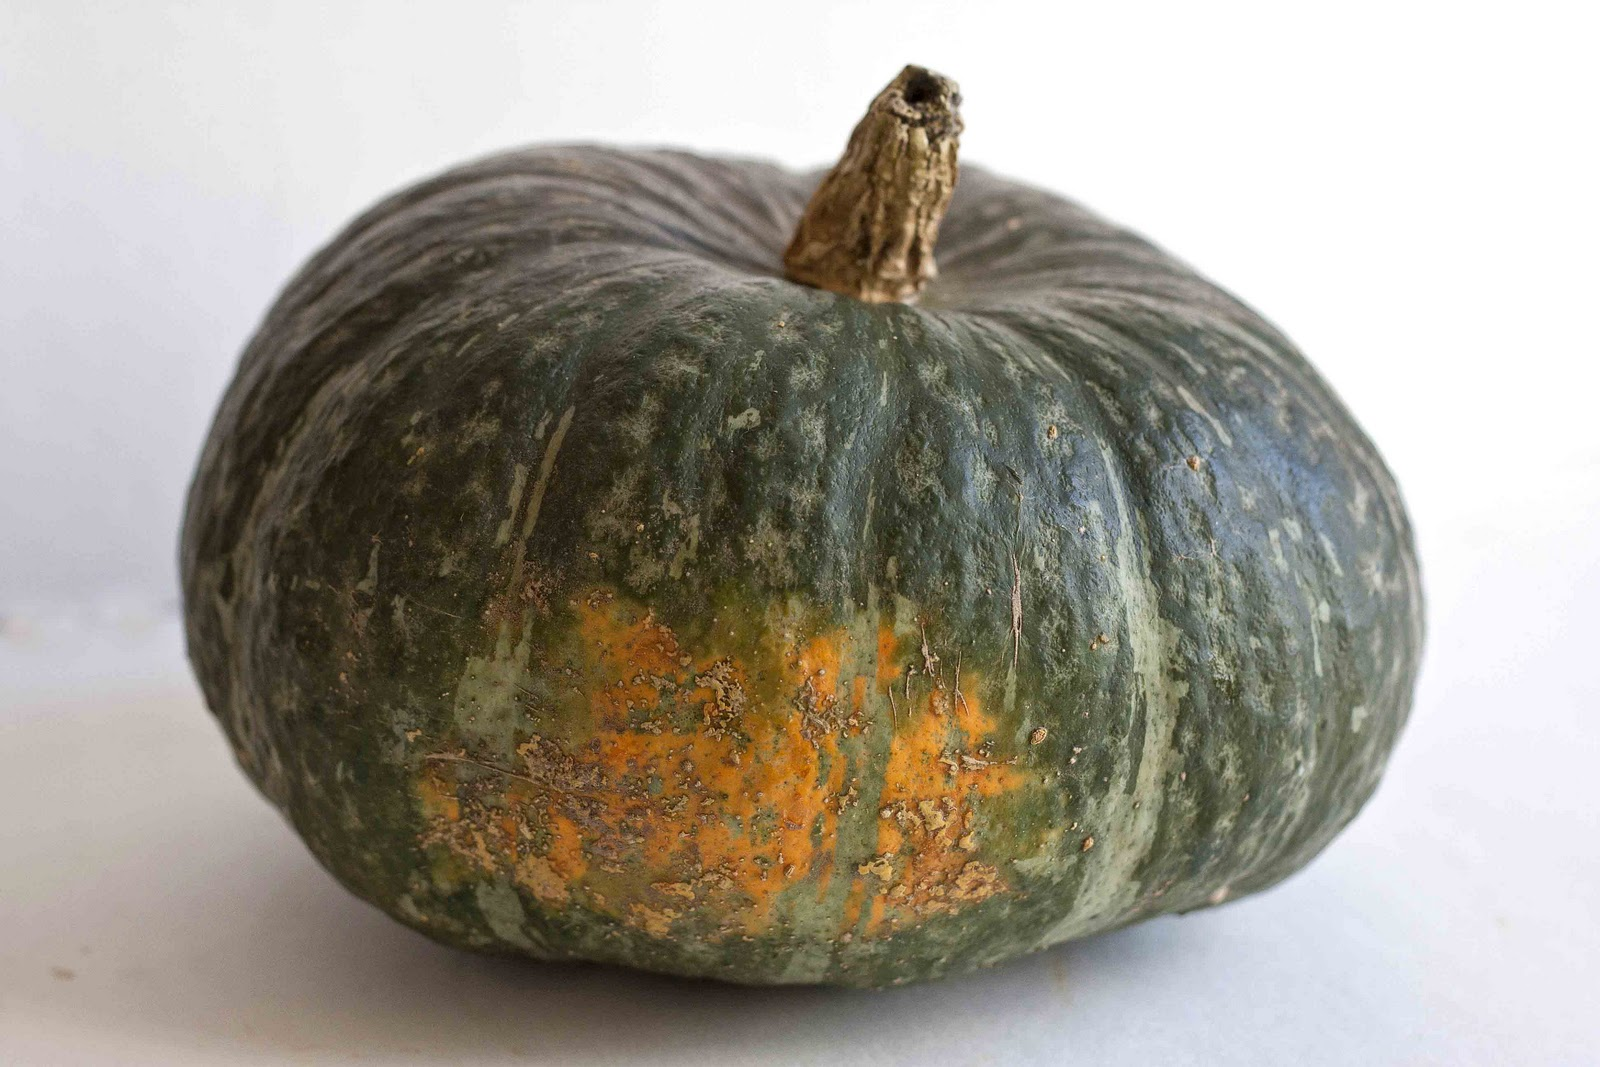 method of preparing the squash since buttercups they look like